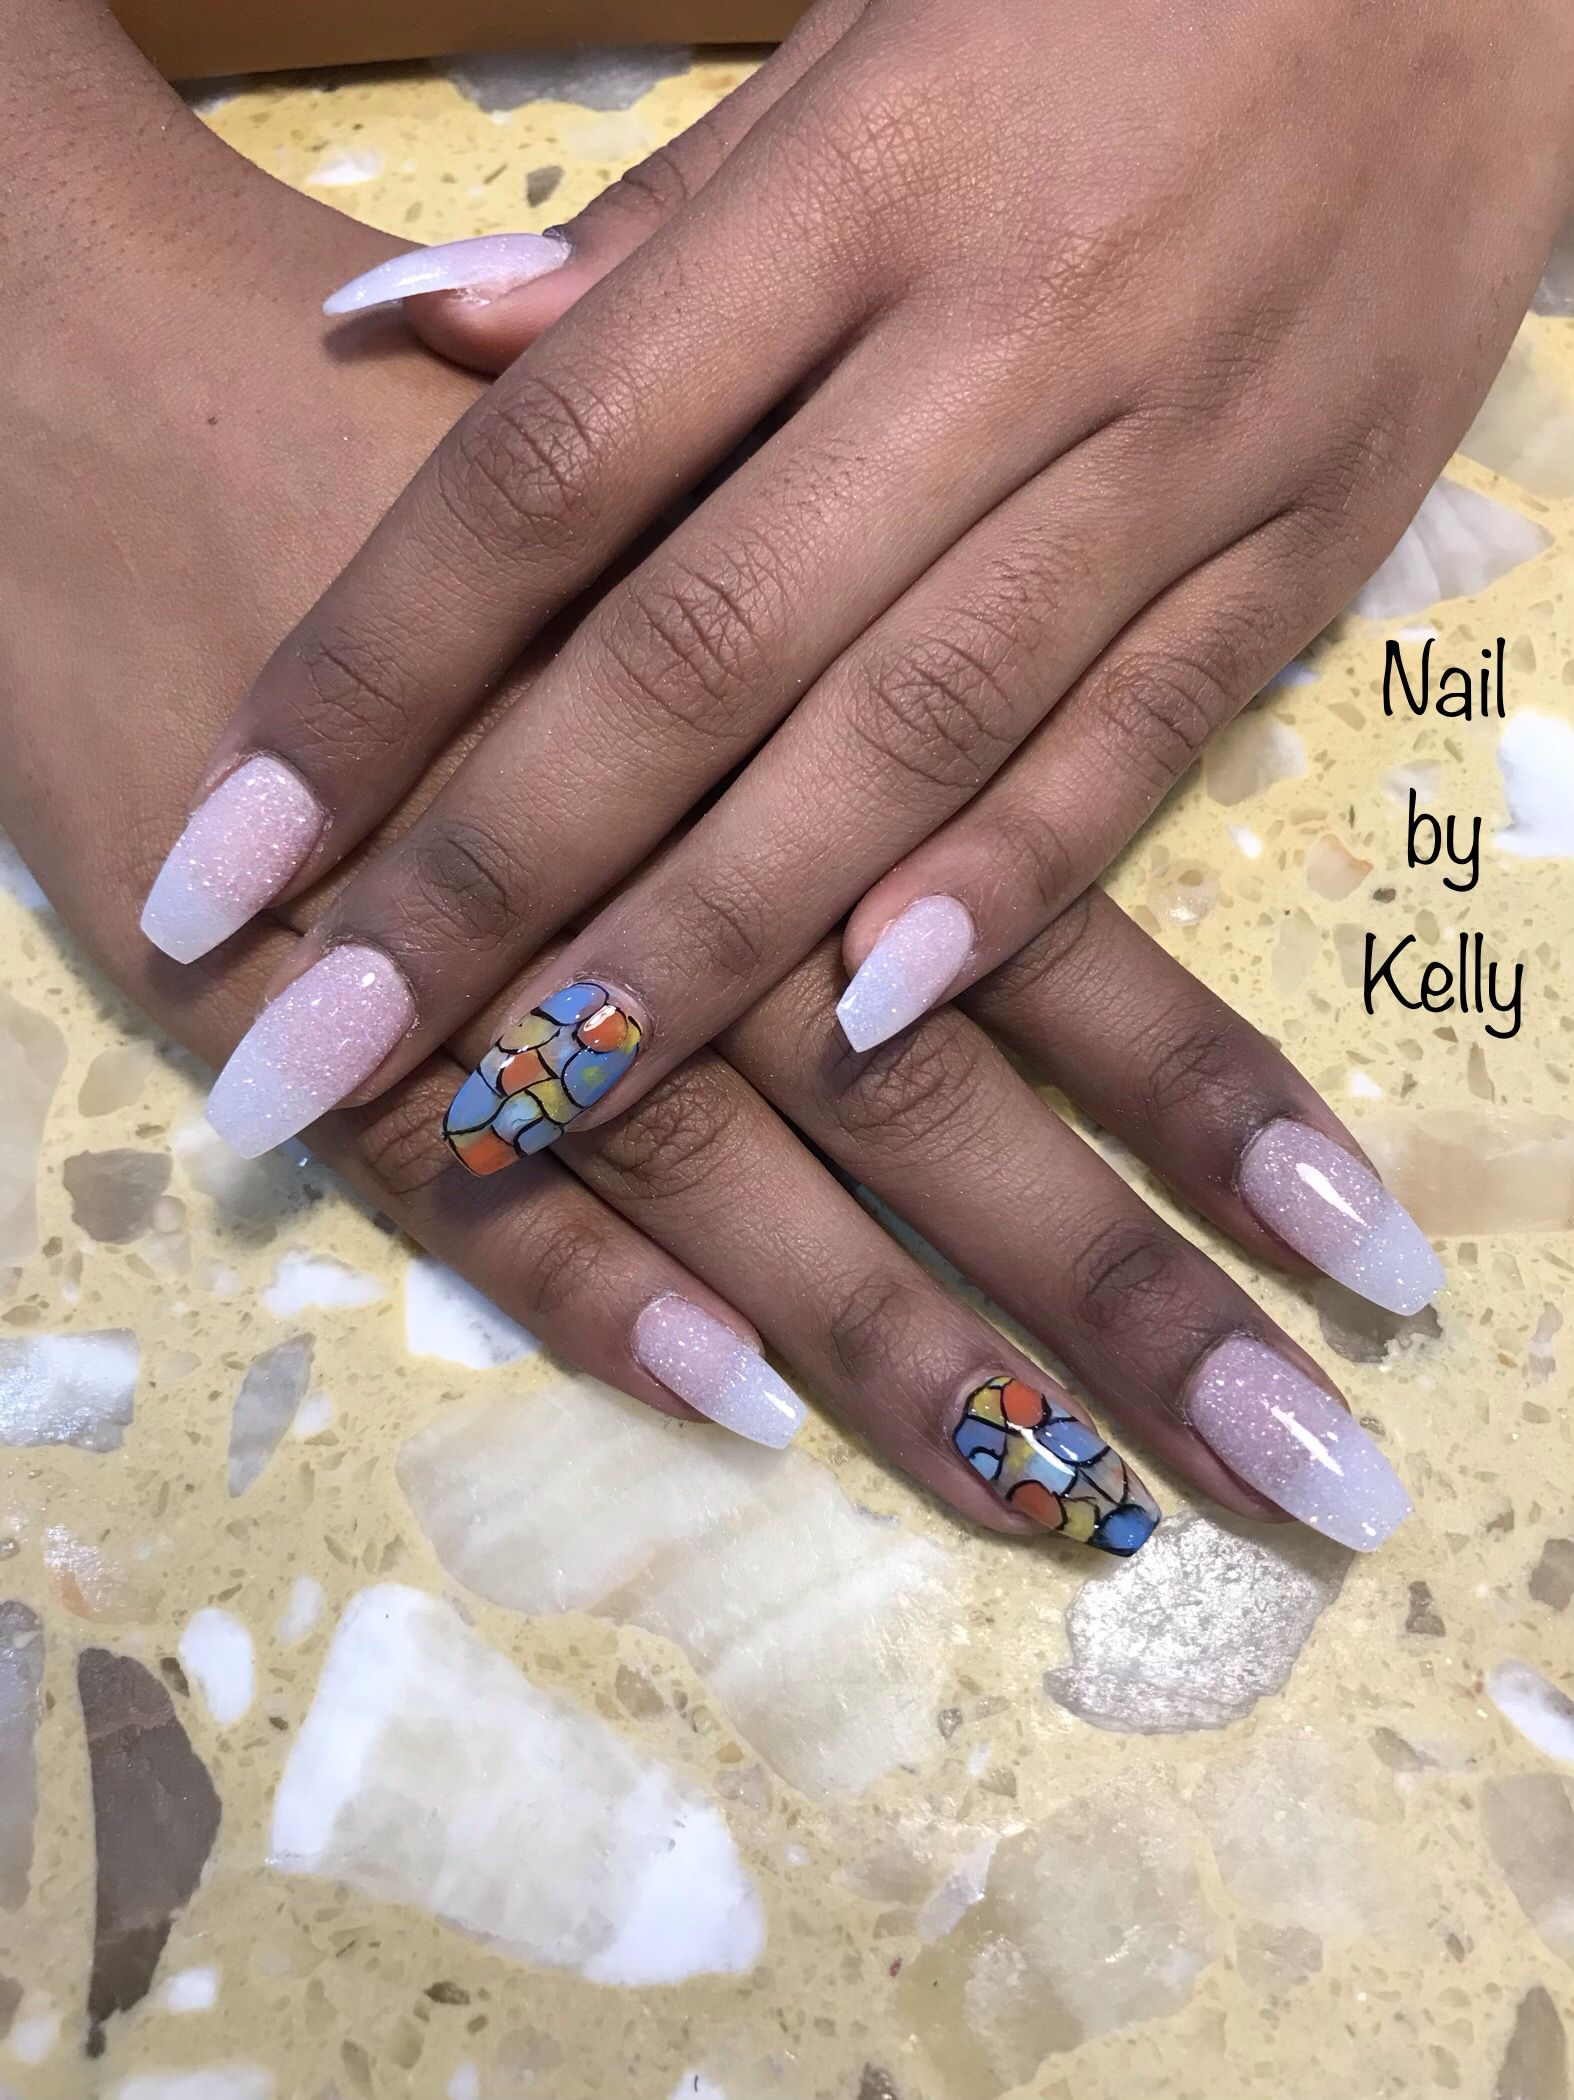 Pin by Kelly Bukowski on Nails in 2020   Nails, Beauty